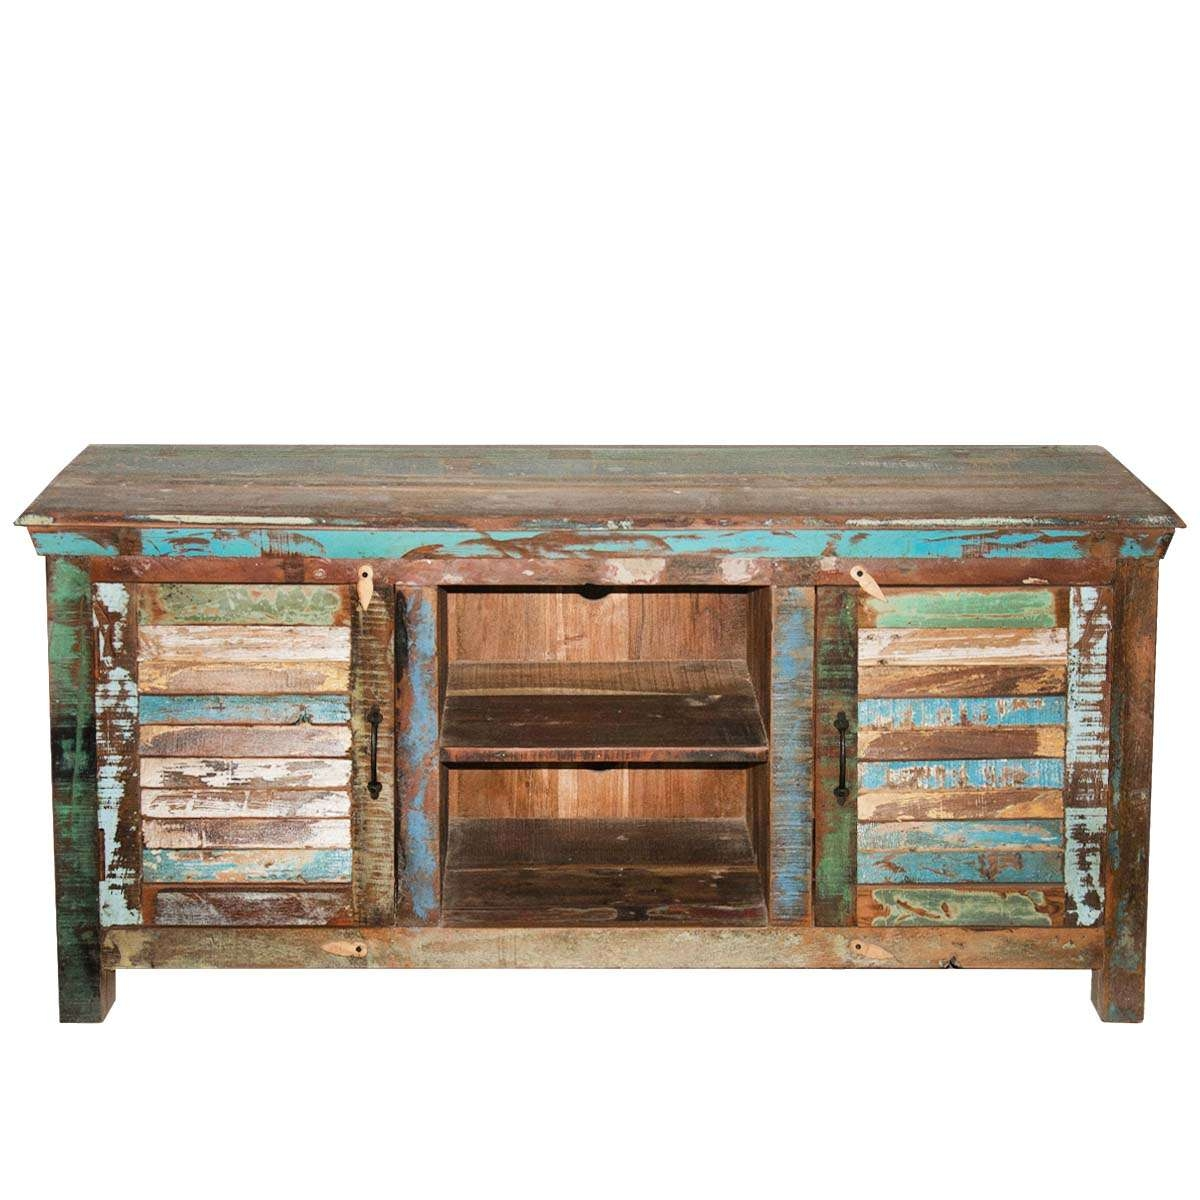 Tv : Stunning Reclaimed Wood And Metal Tv Stands Vintage Retro Box Regarding Reclaimed Wood And Metal Tv Stands (View 13 of 20)